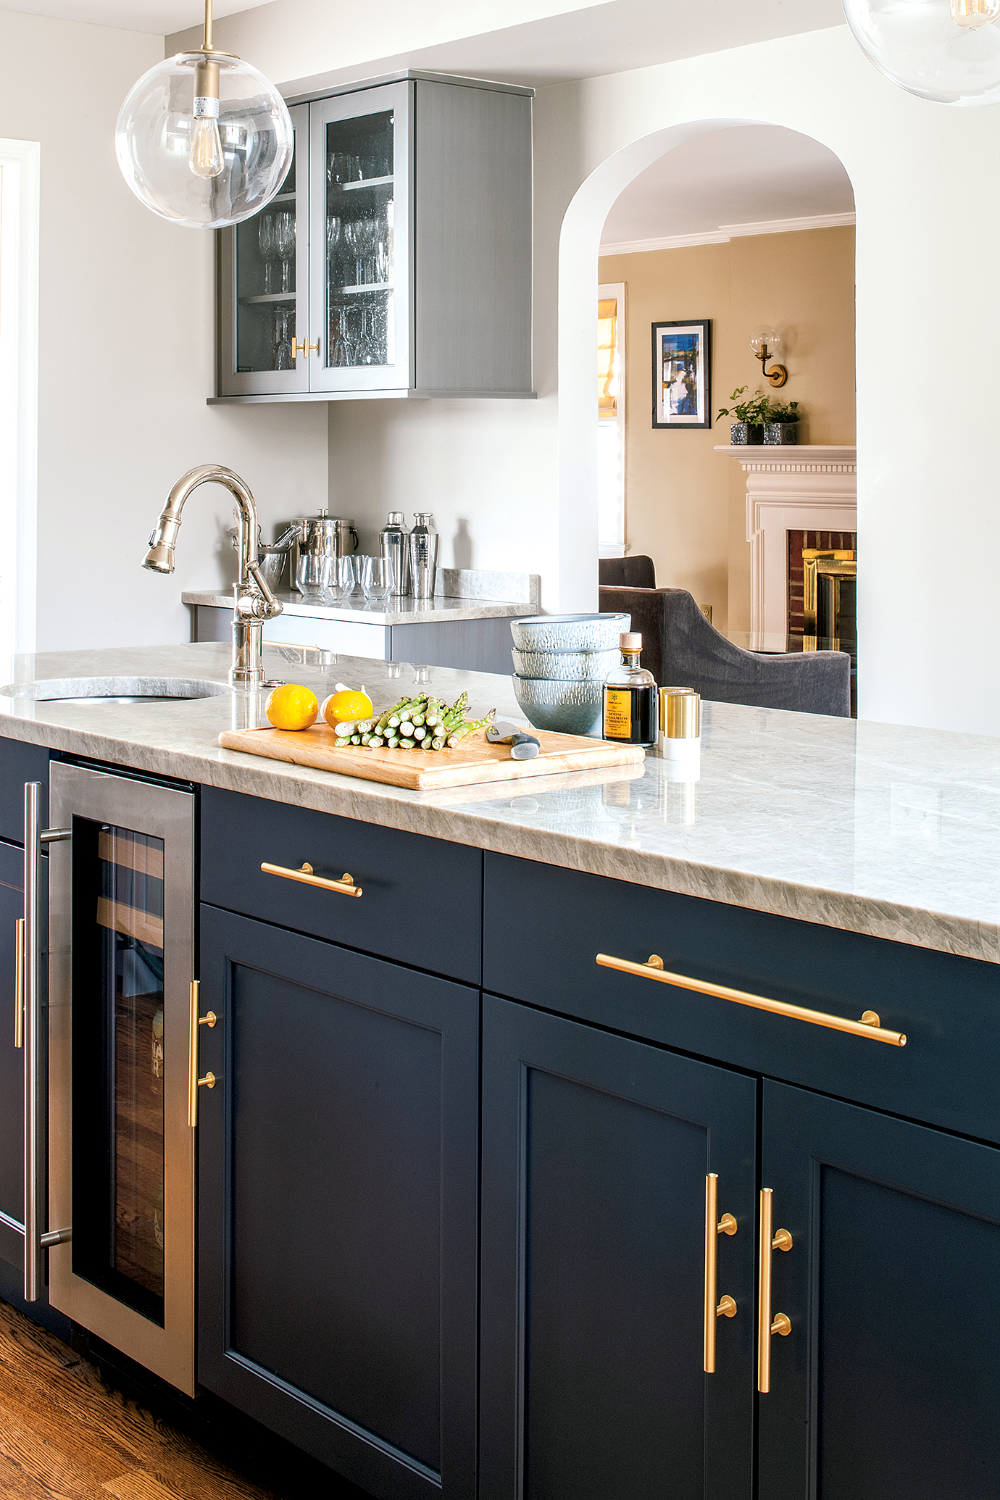 These Design Elements Are Turning Up in Kitchens All Over ...